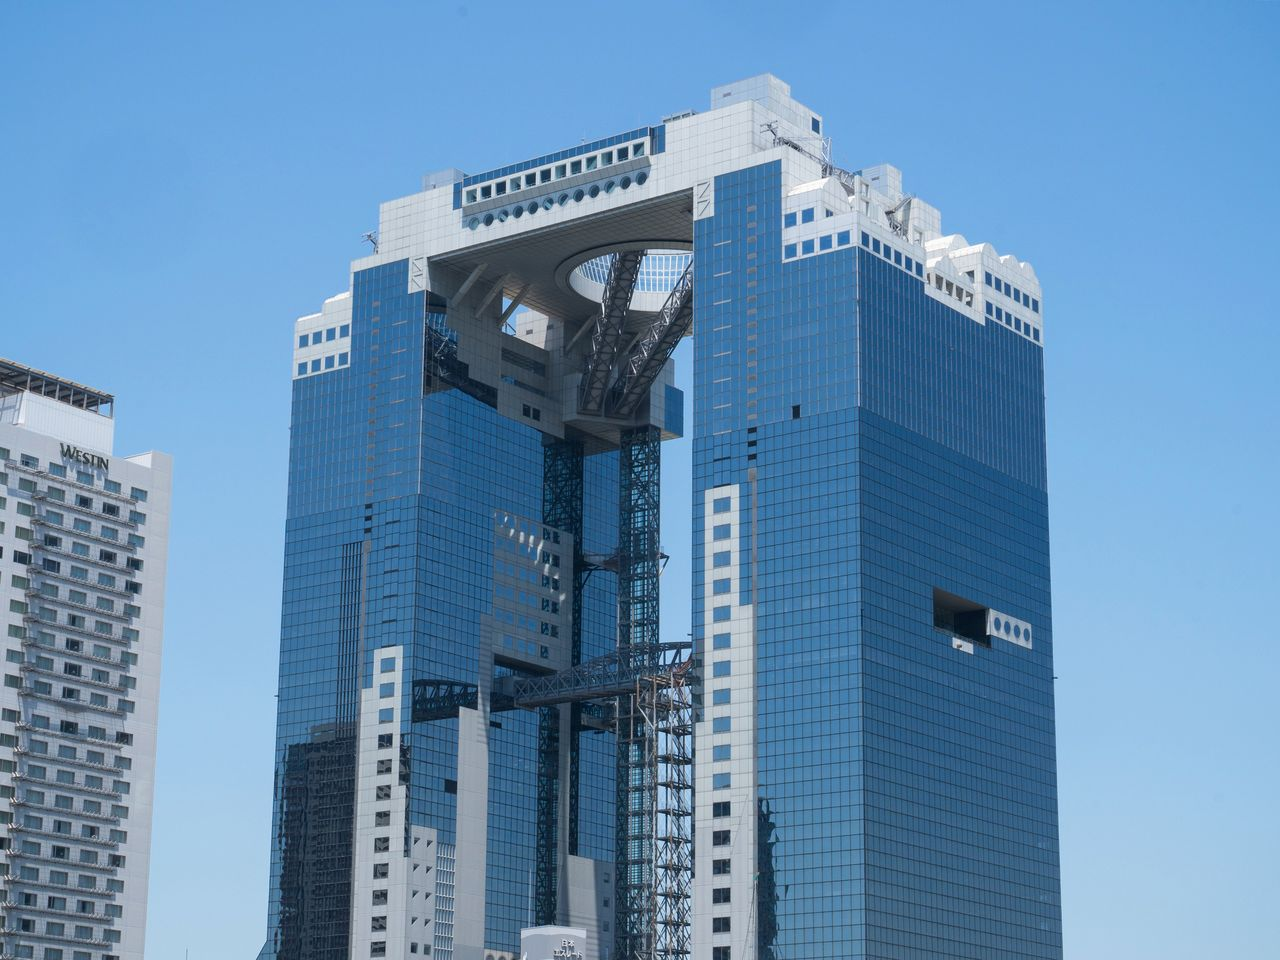 The Umeda Sky Building Floating Garden observatory is a hit with overseas visitors.